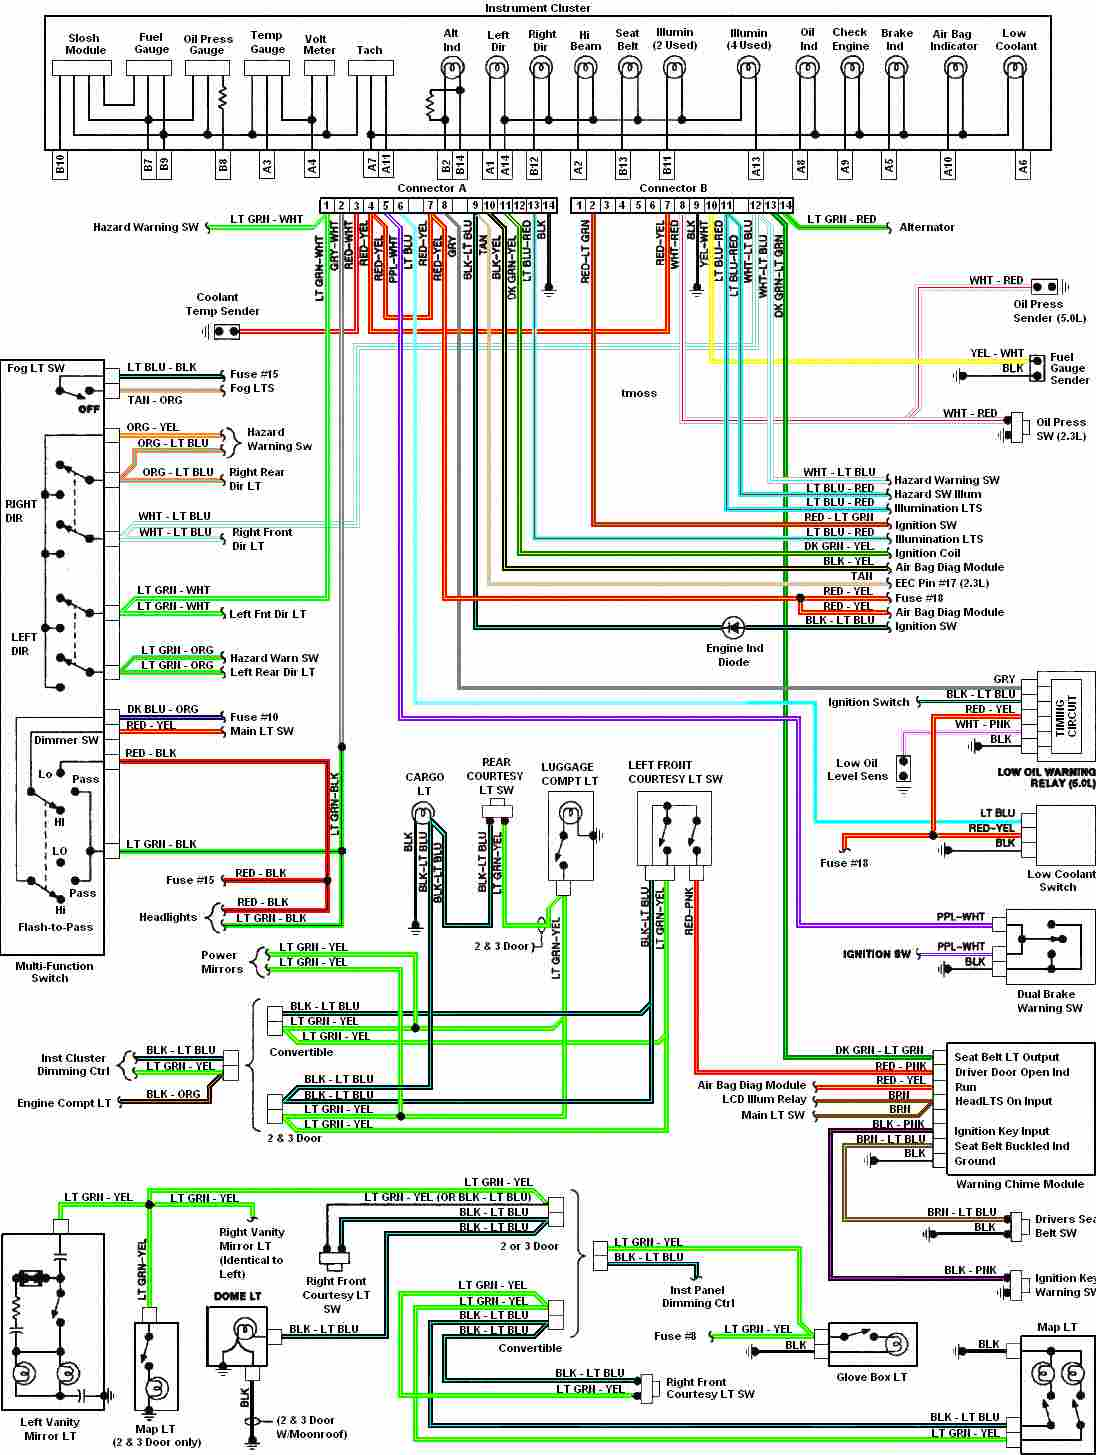 1984 Camaro Wiring Schematic Explained Diagrams Diagram Cp450c Circuit And Hub U2022 G Body